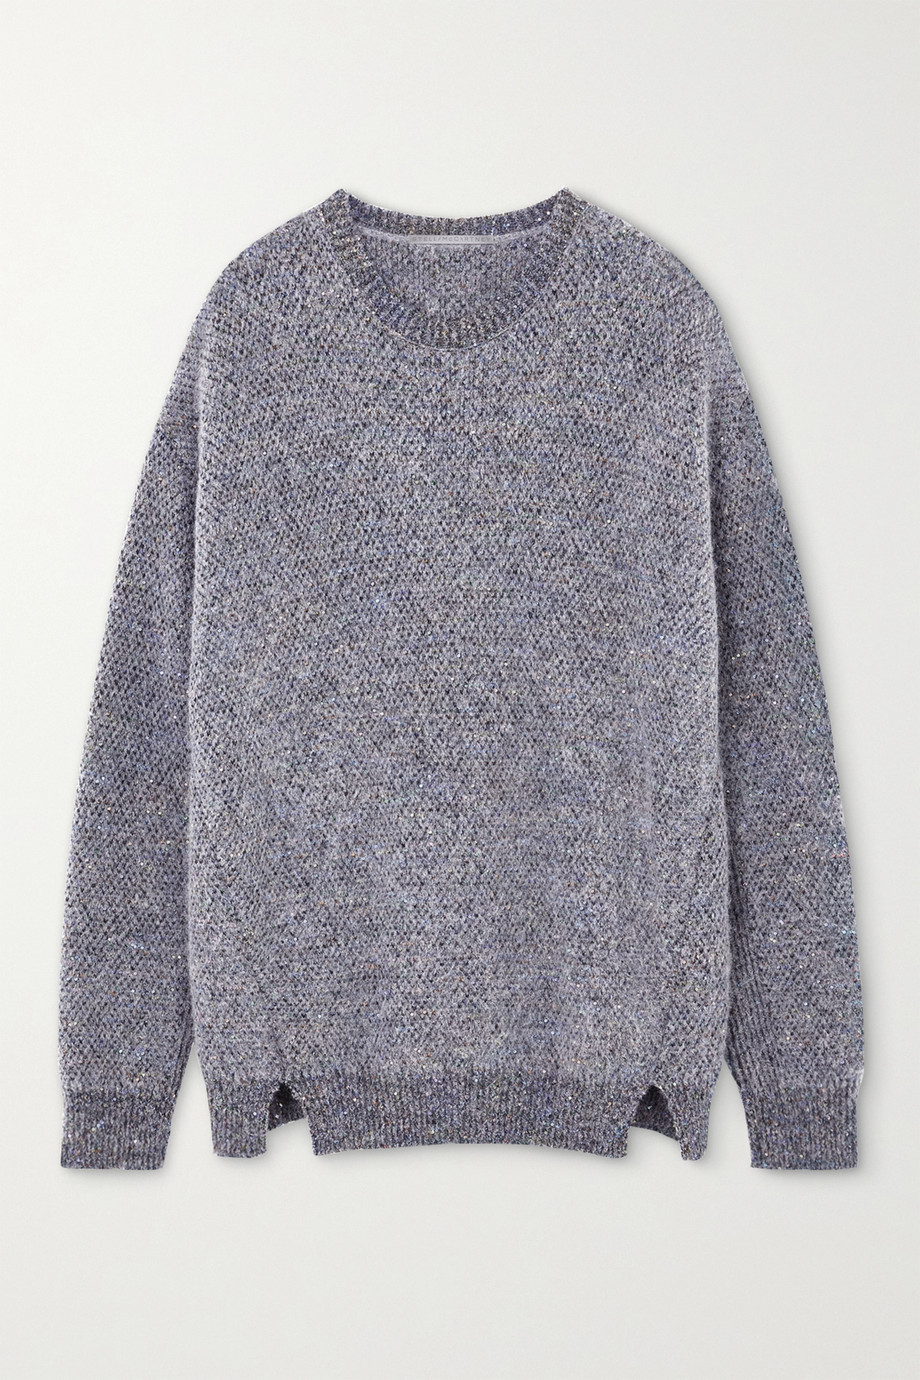 Stella McCartney Sequin-embellished knitted sweater